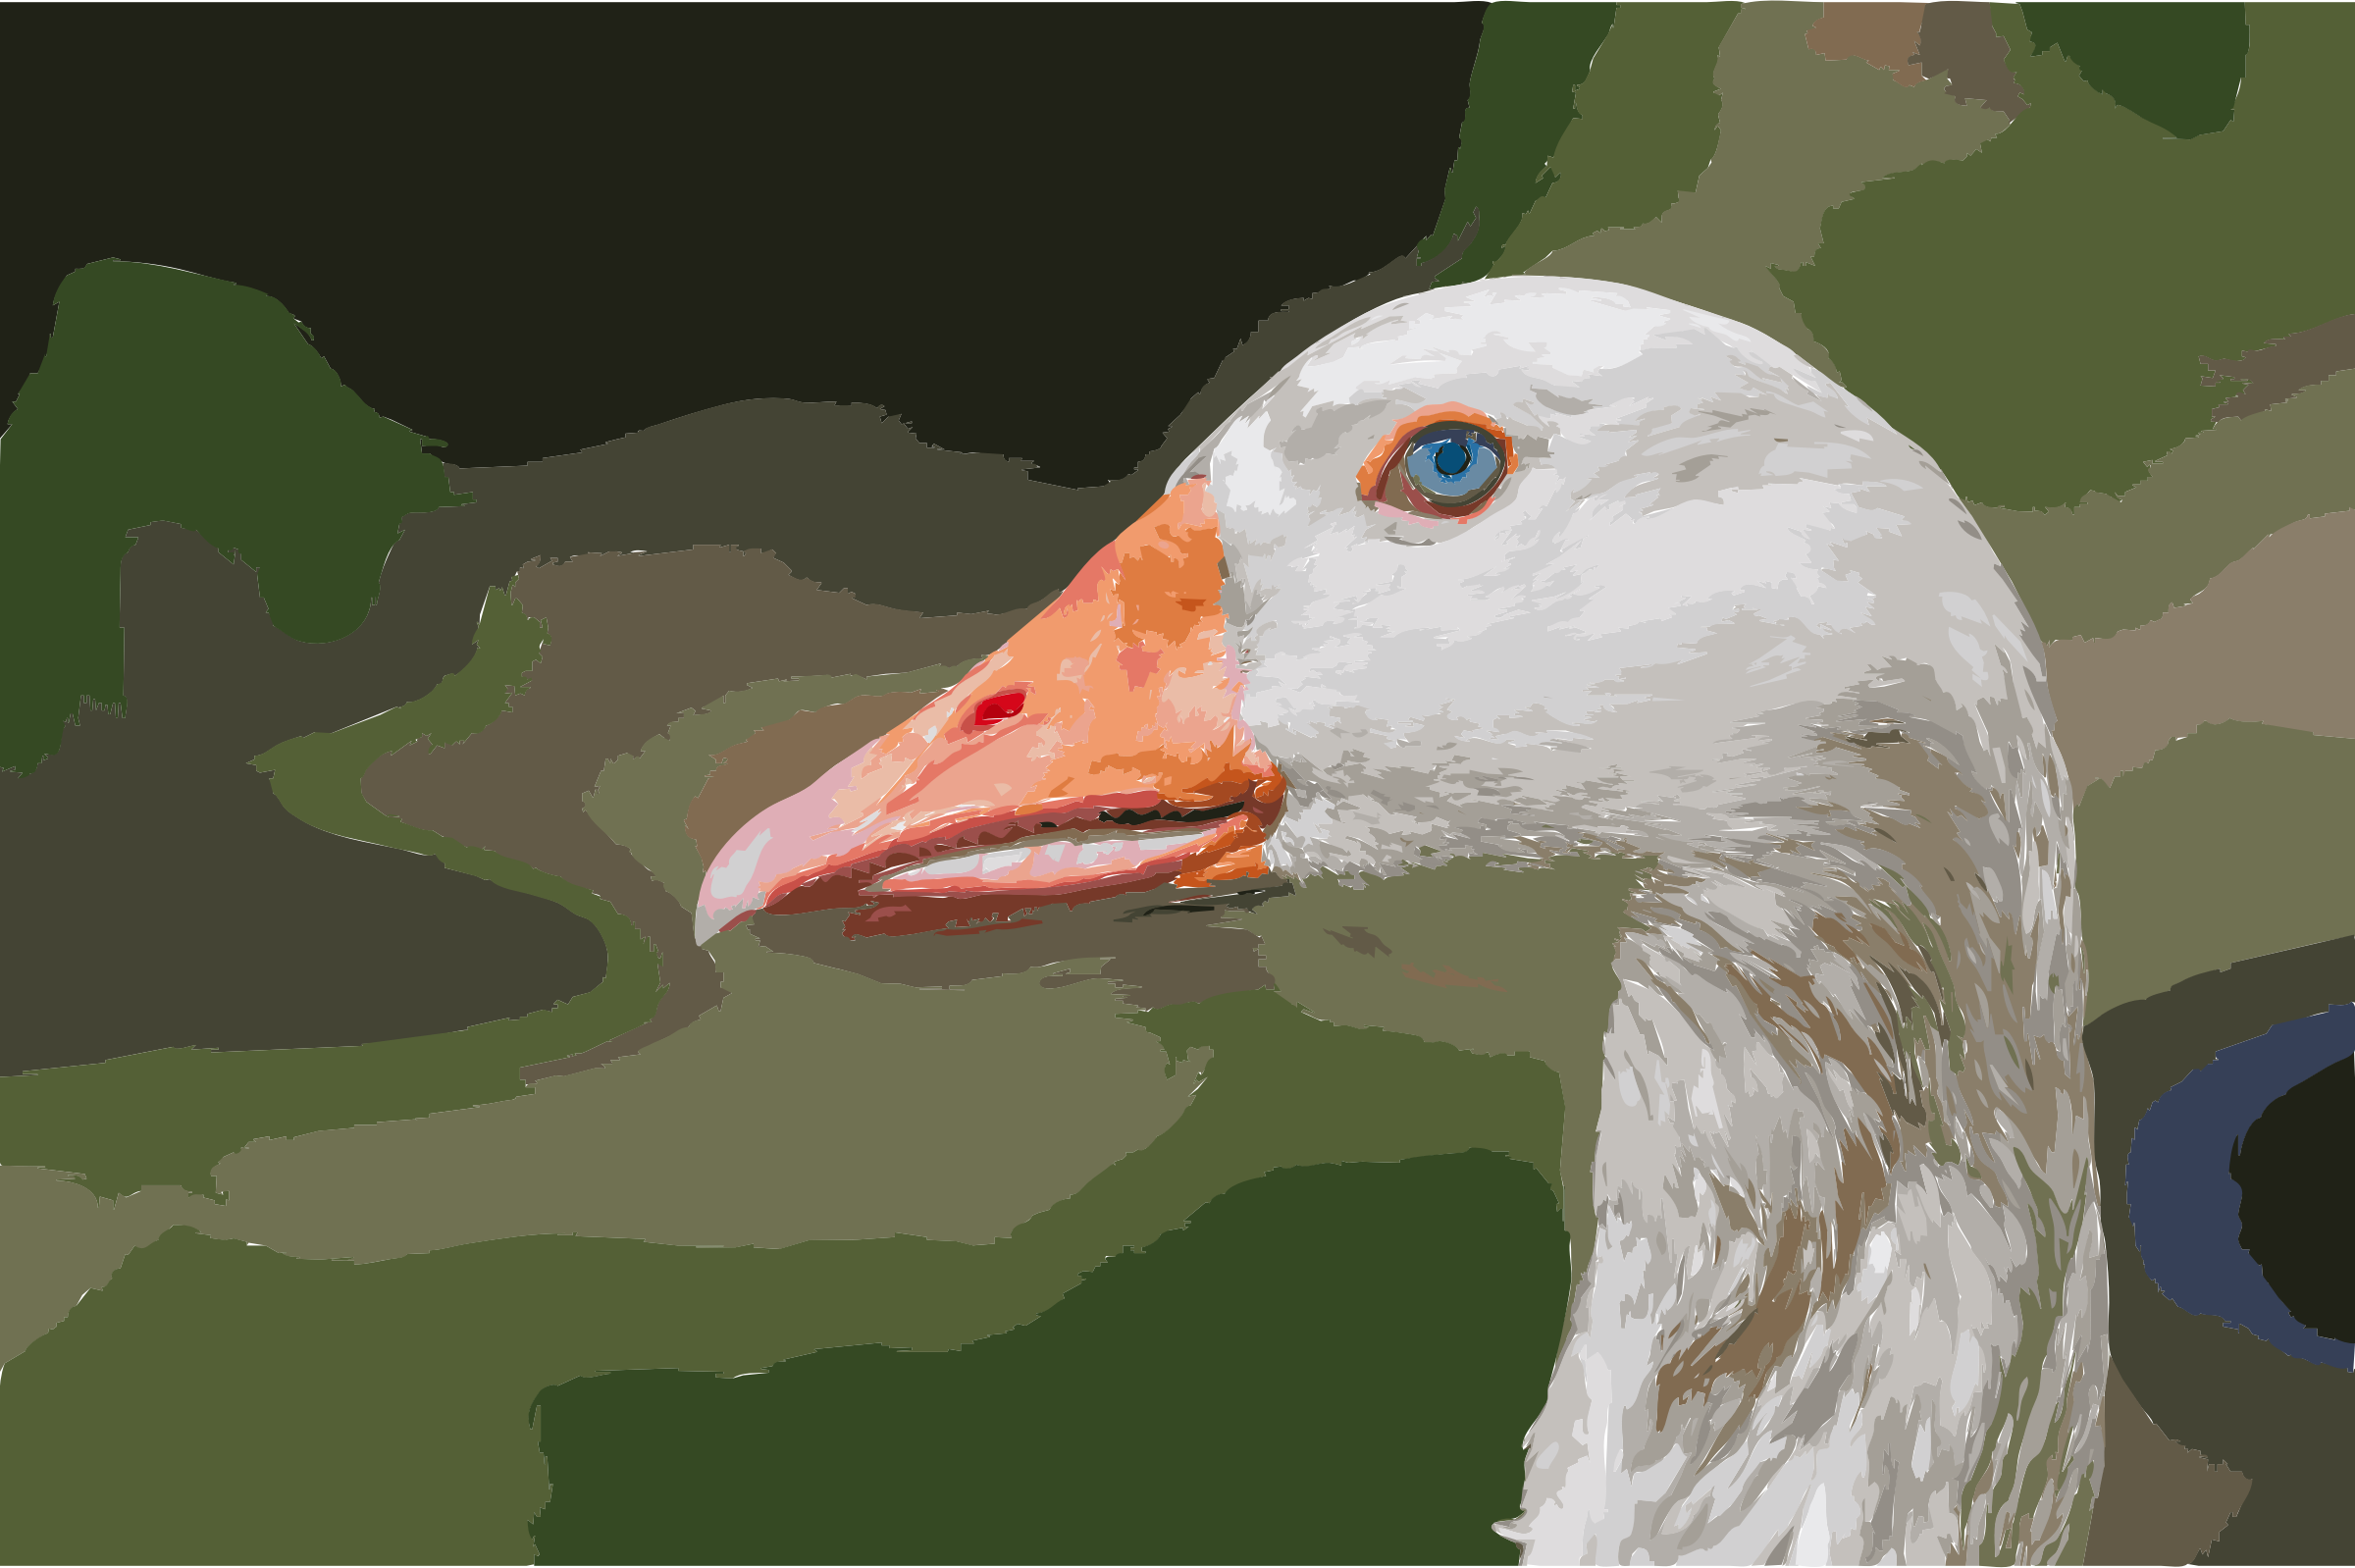 Domesticated goose head, Chaguaramal, Venezuela by 5mcnth+58omk35zmzqms